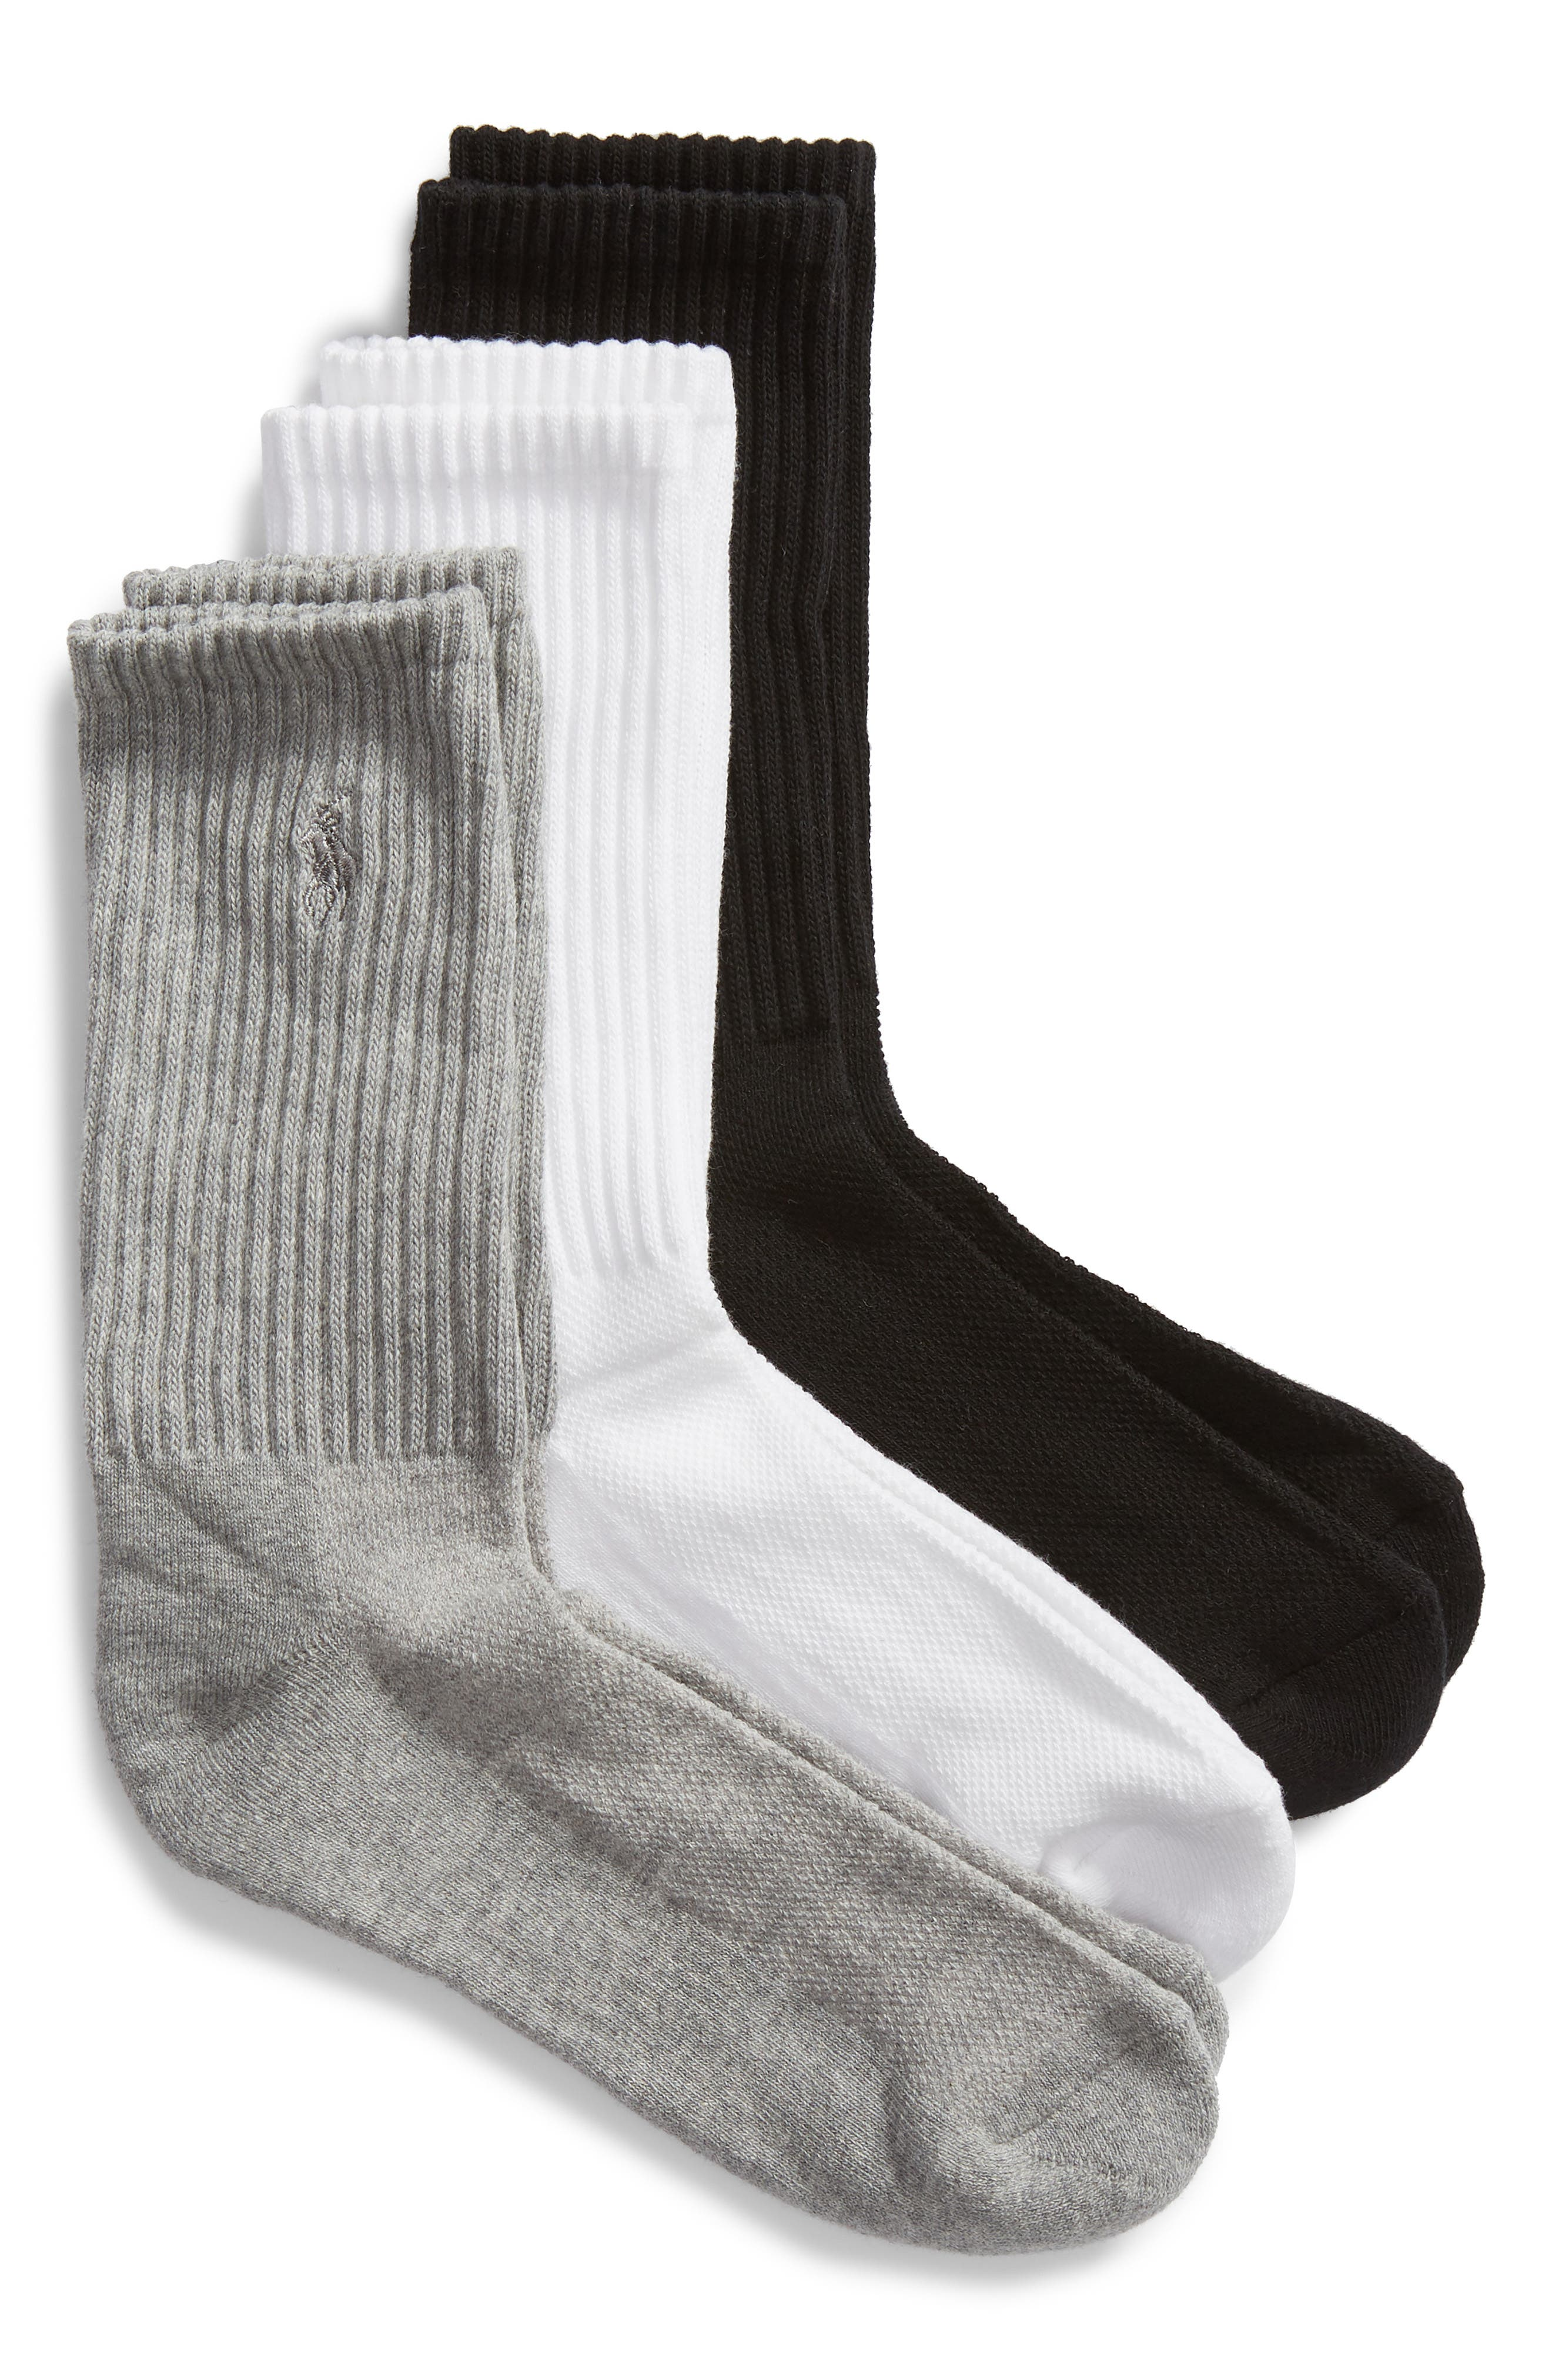 3-Pack Cushion Sole Crew Socks,                             Main thumbnail 1, color,                             100